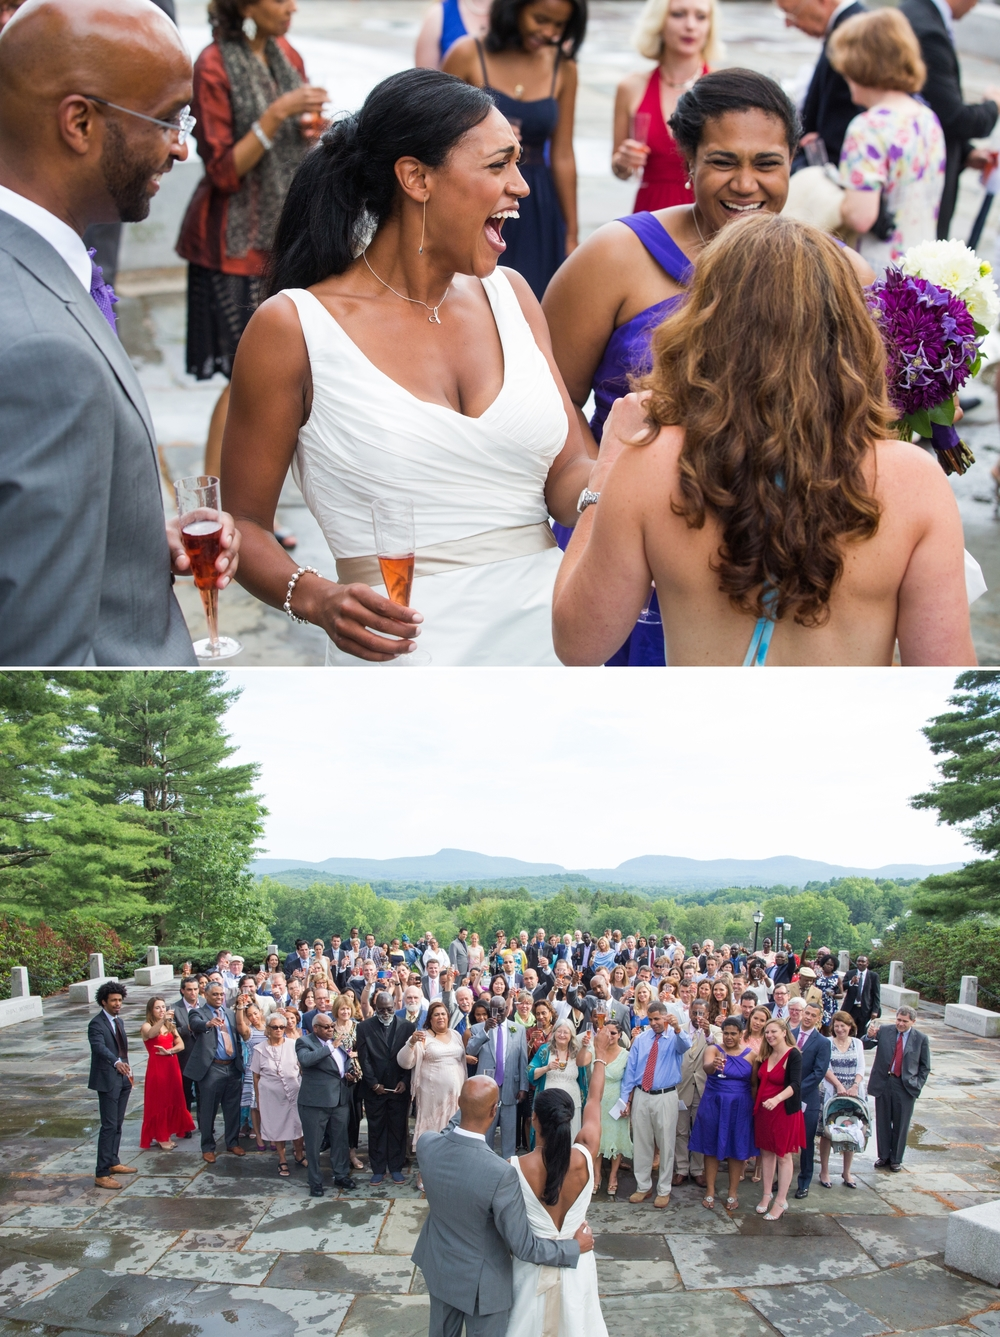 LordJefferyInnWedding_HolidayJuly4thWedding_AmherstMA_MichelleGirardPhotography24.jpg